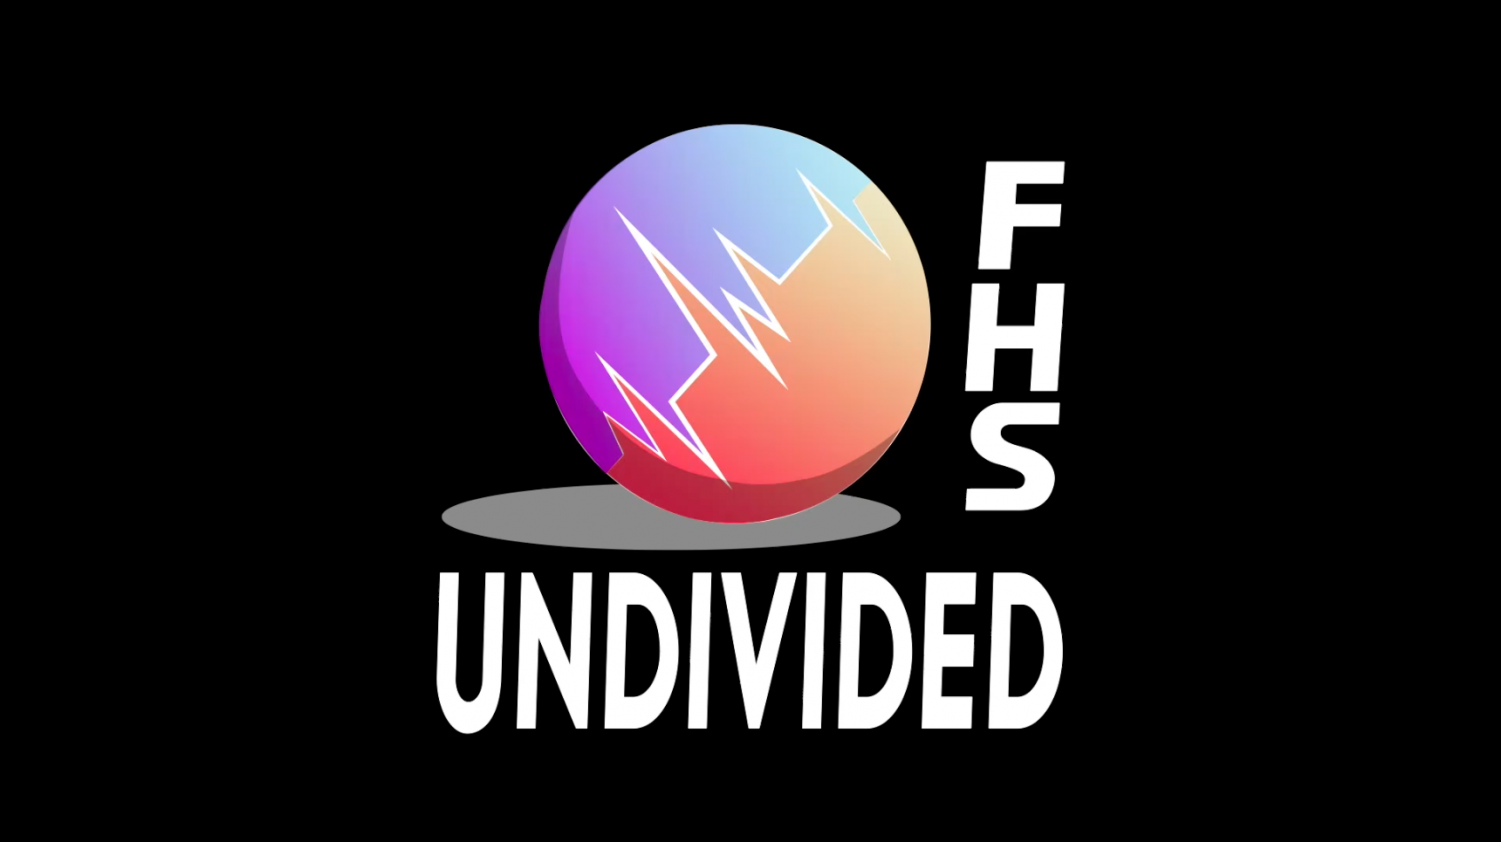 FHS Undivided - Education Series Part 2